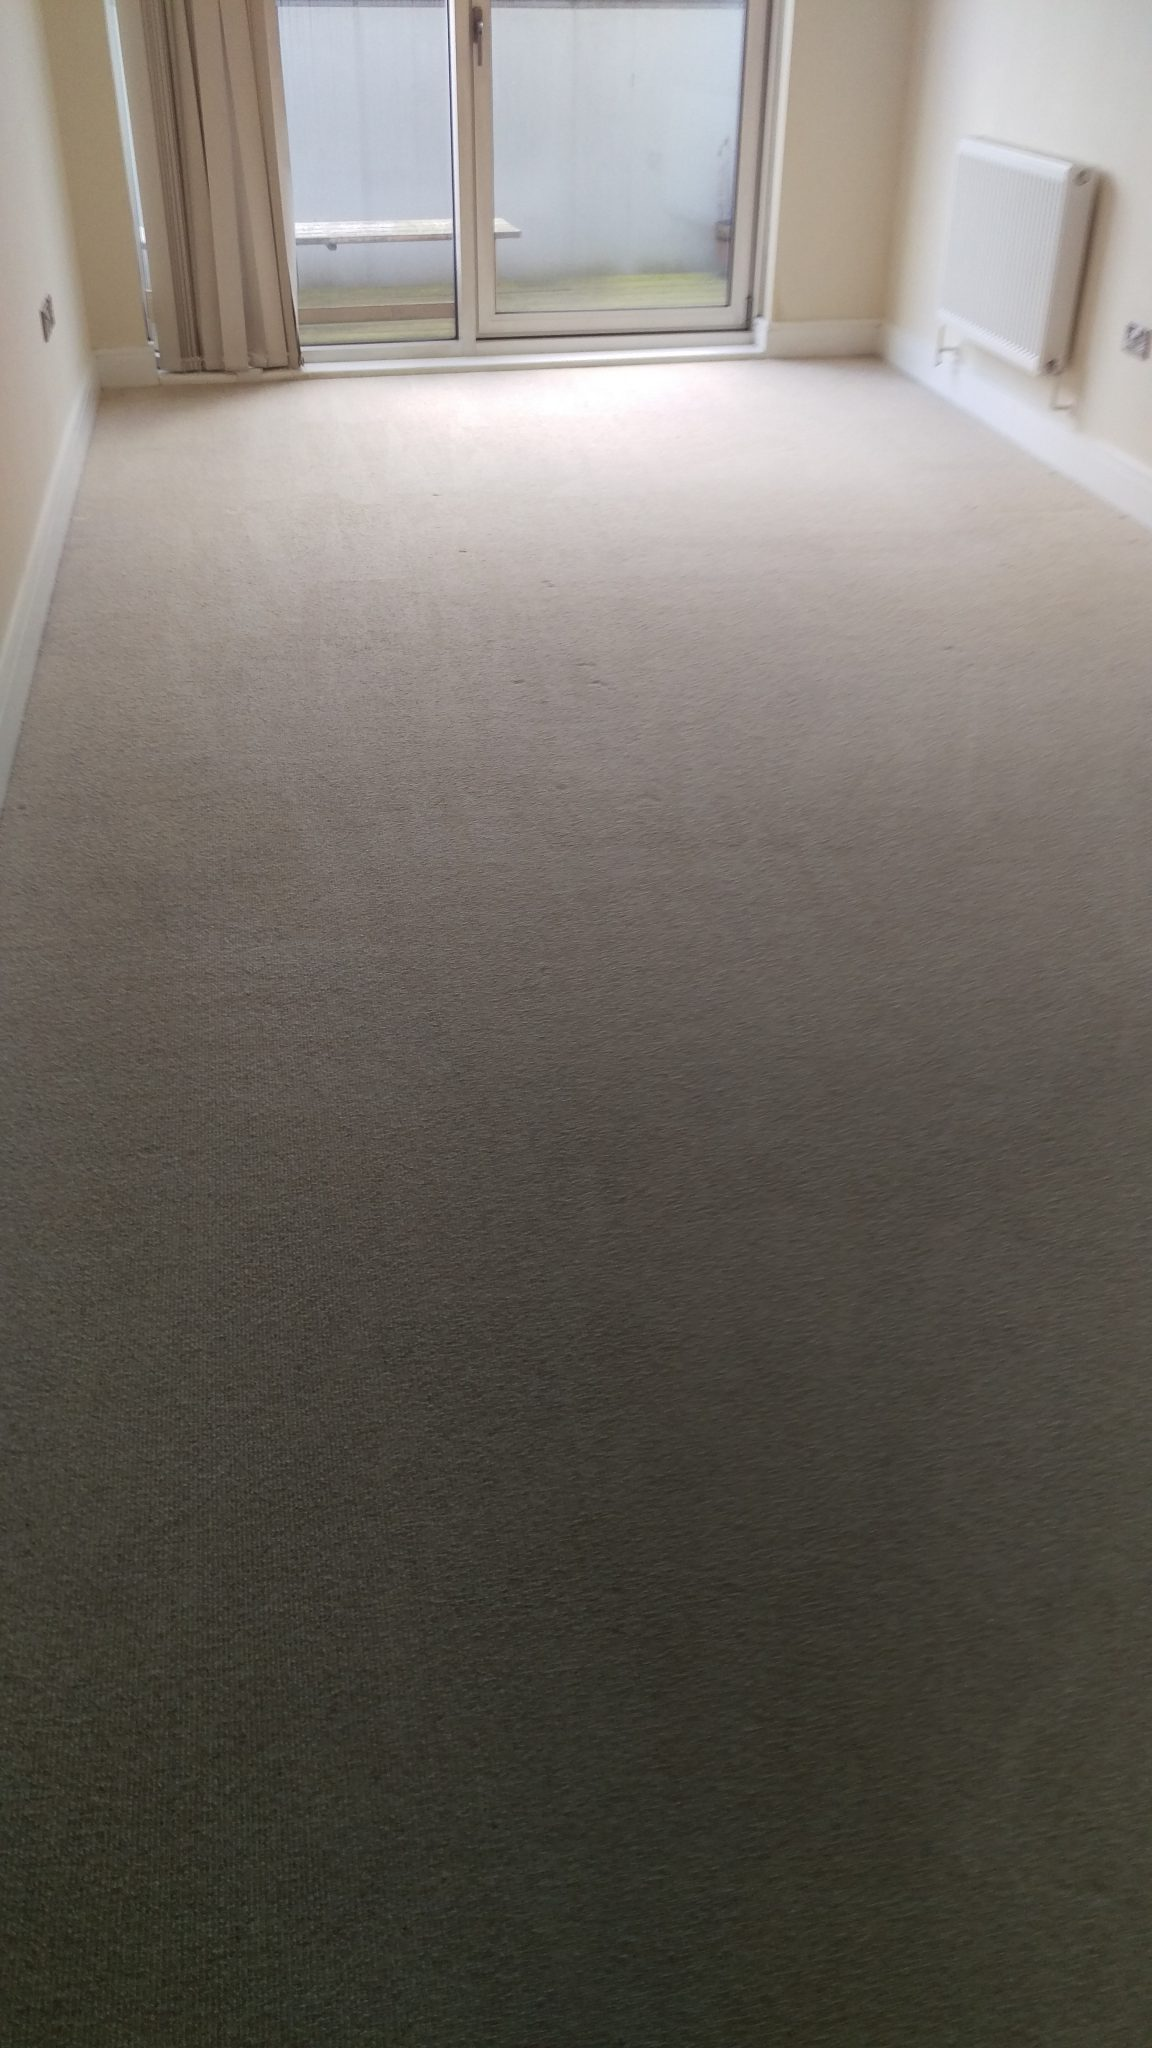 Carpet Cleaning In Addington Cr0 Postcode Area South